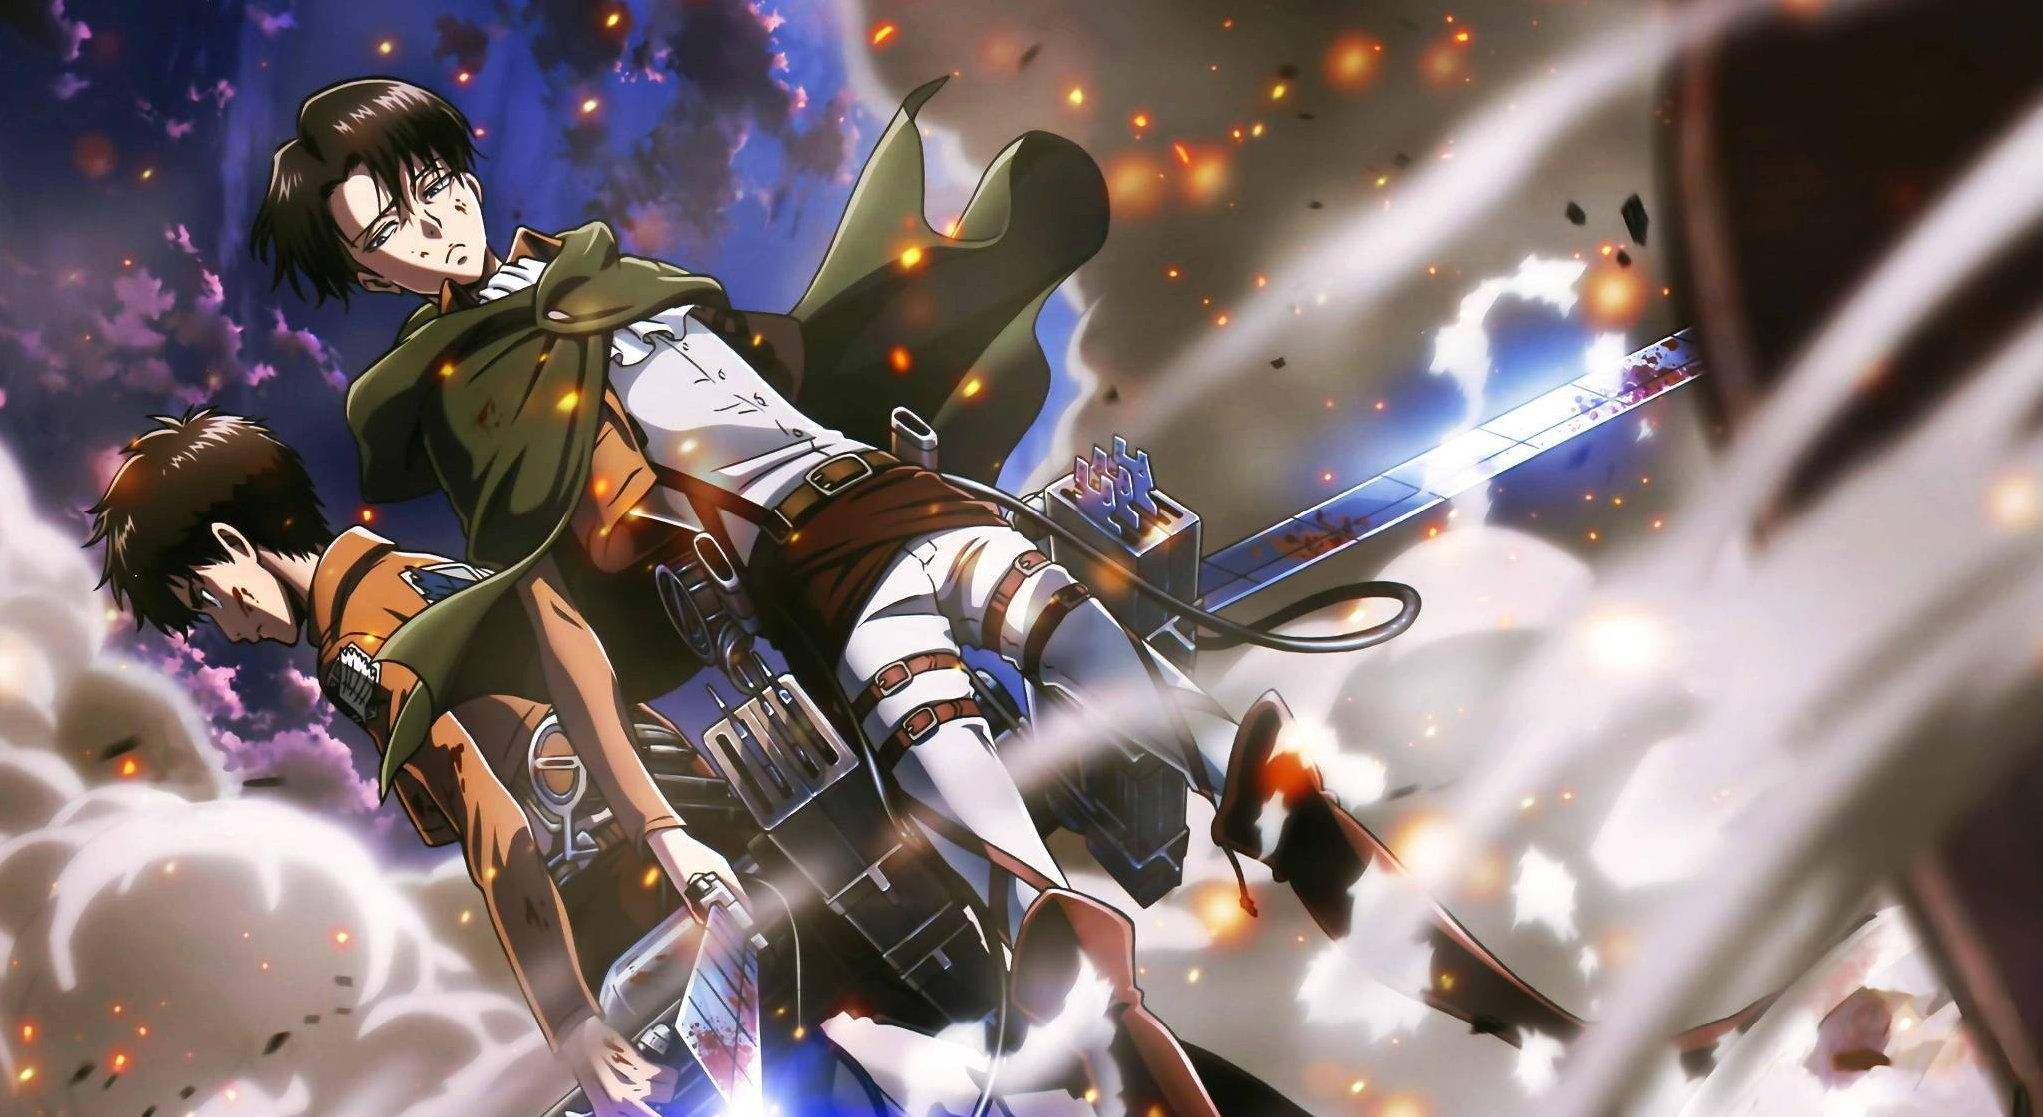 Levi Shingeki No Kyojin Wallpapers 4k Dowload Anime Wallpaper Hd